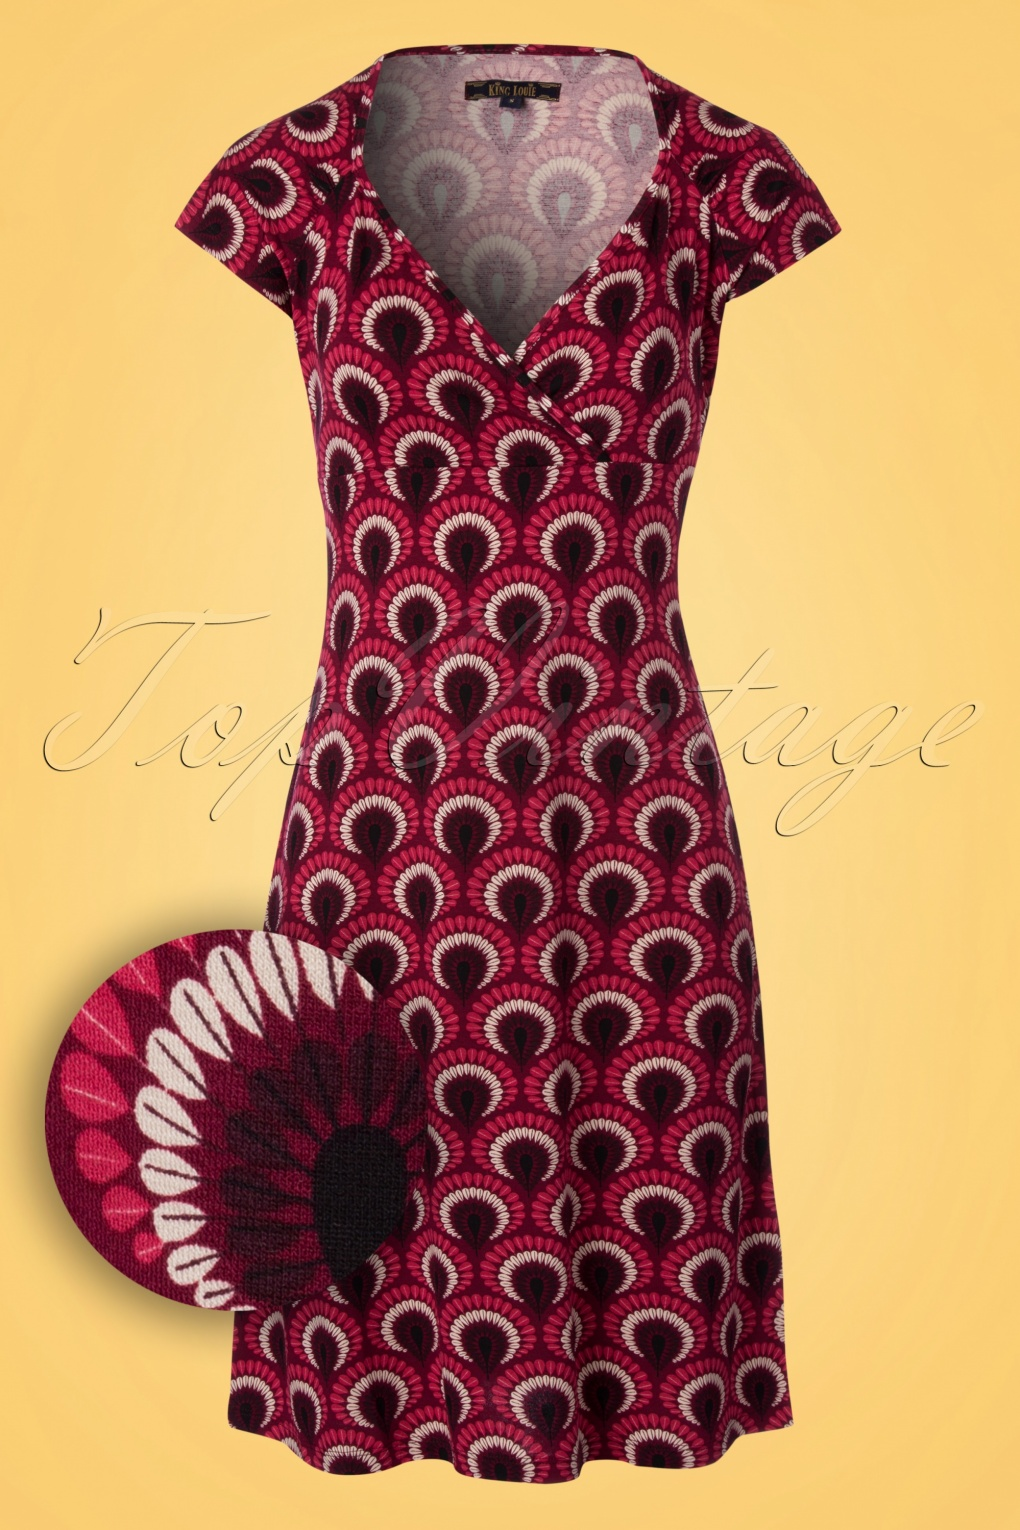 Plus Size Vintage Dresses, Plus Size Retro Dresses 60s Gina Peacock Dress in Beaujolais Red £84.10 AT vintagedancer.com